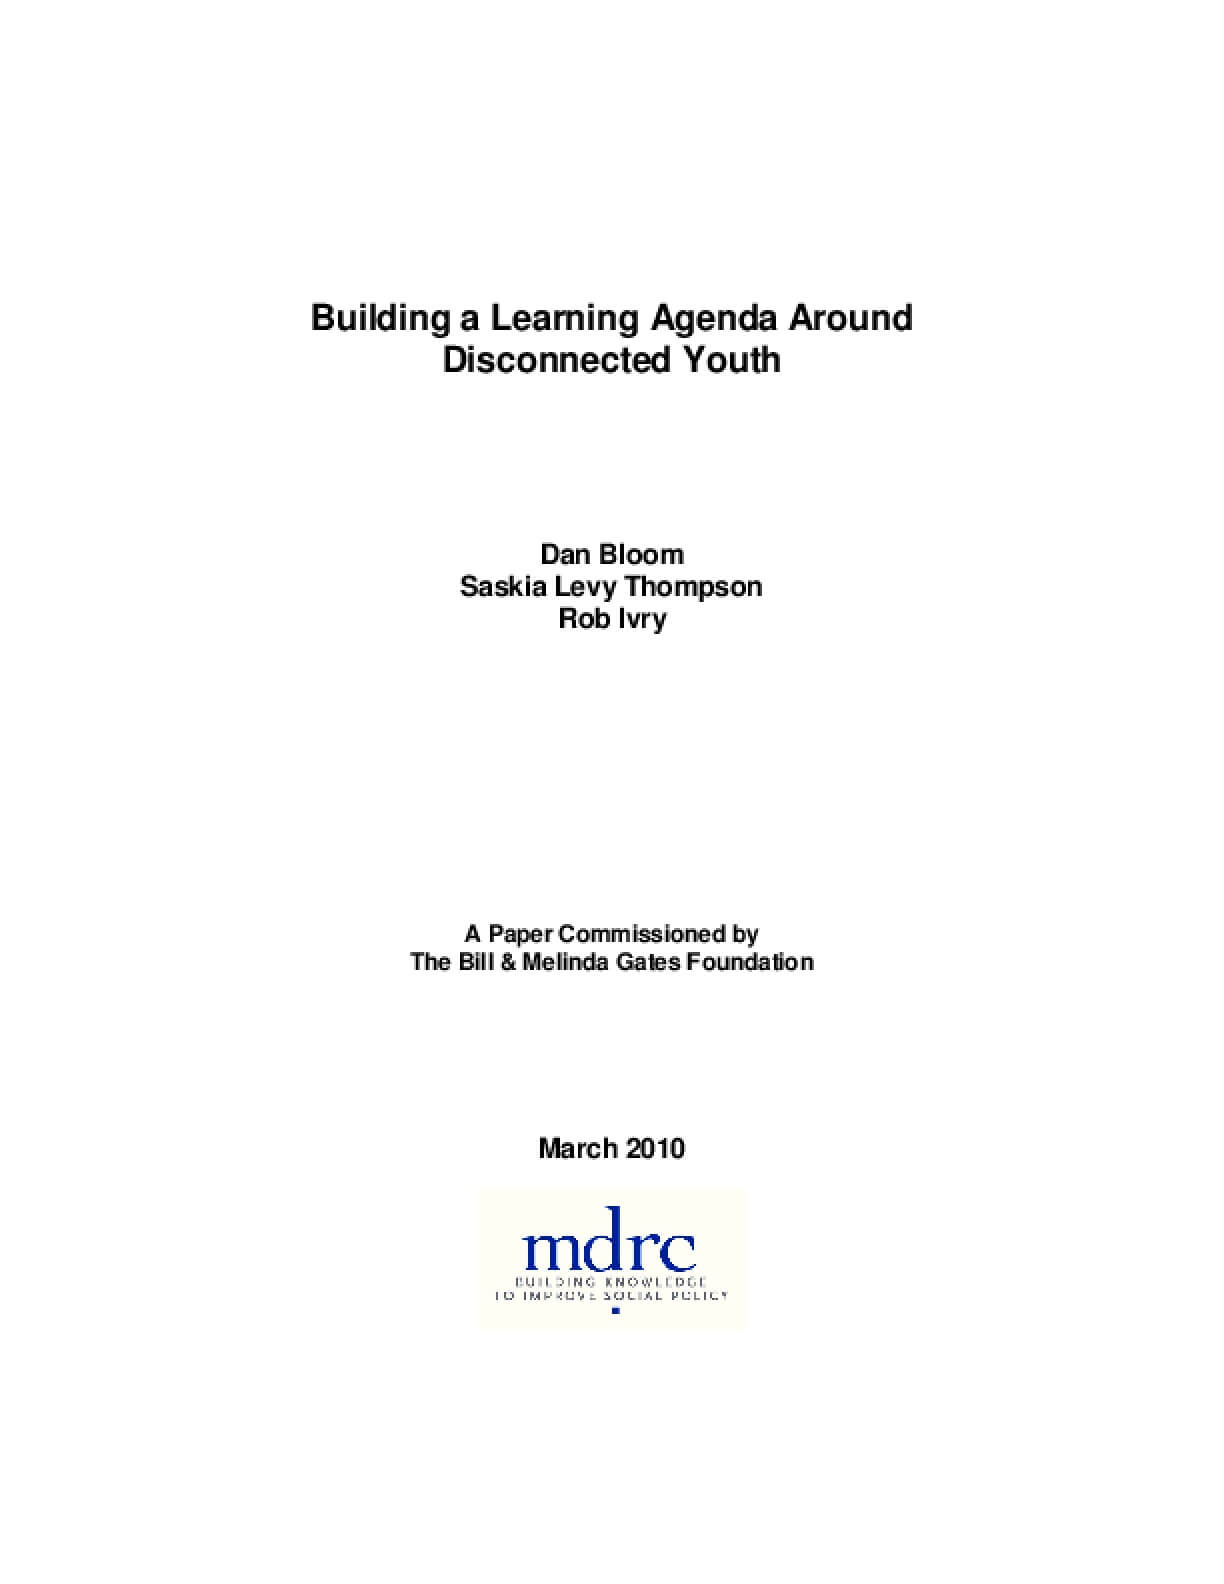 Building a Learning Agenda Around Disconnected Youth